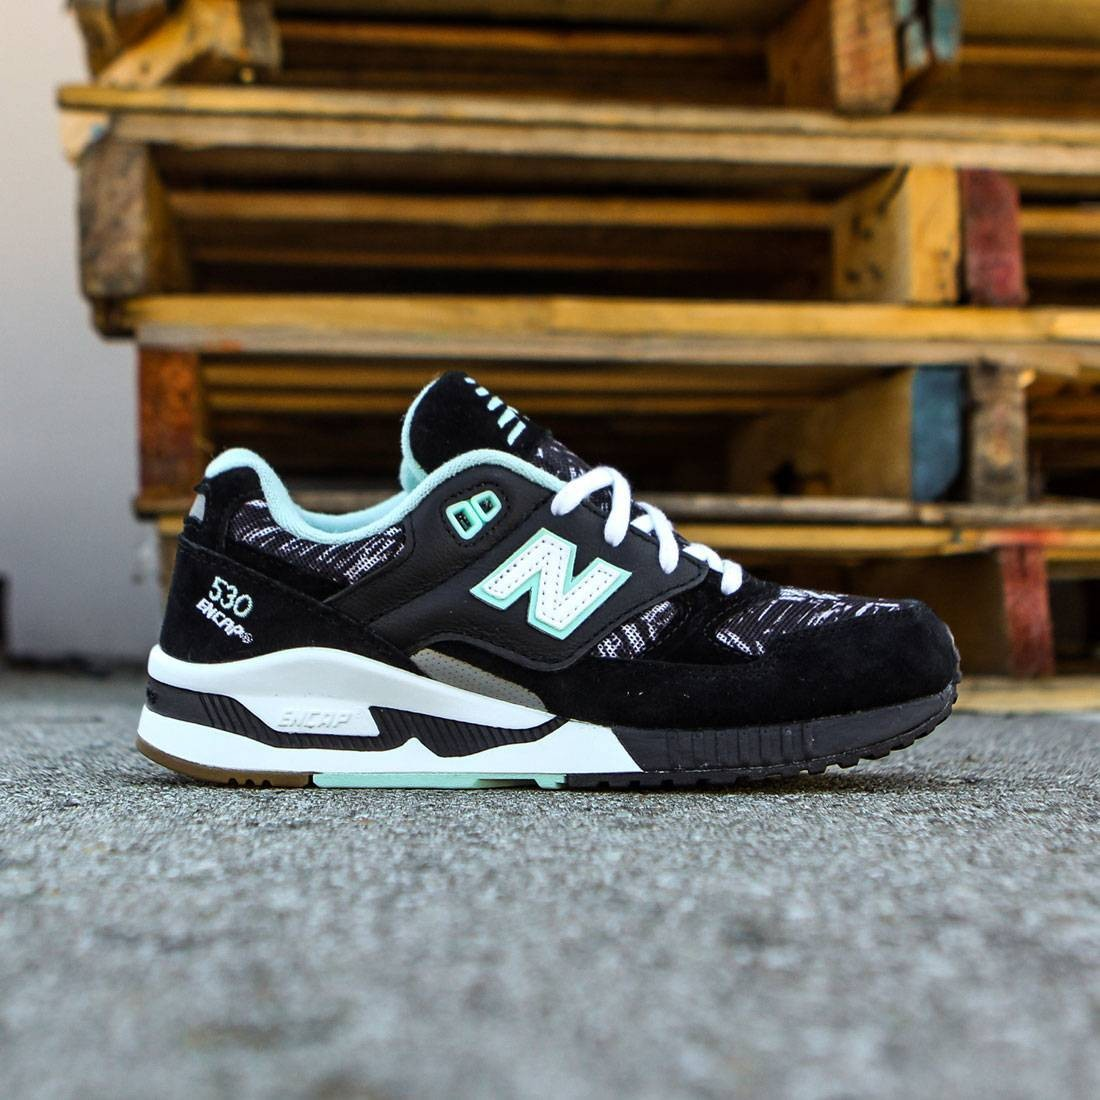 best service 49622 c1af2 New Balance Women 530 Summer Utility W530SUA (black / white / seafoam)